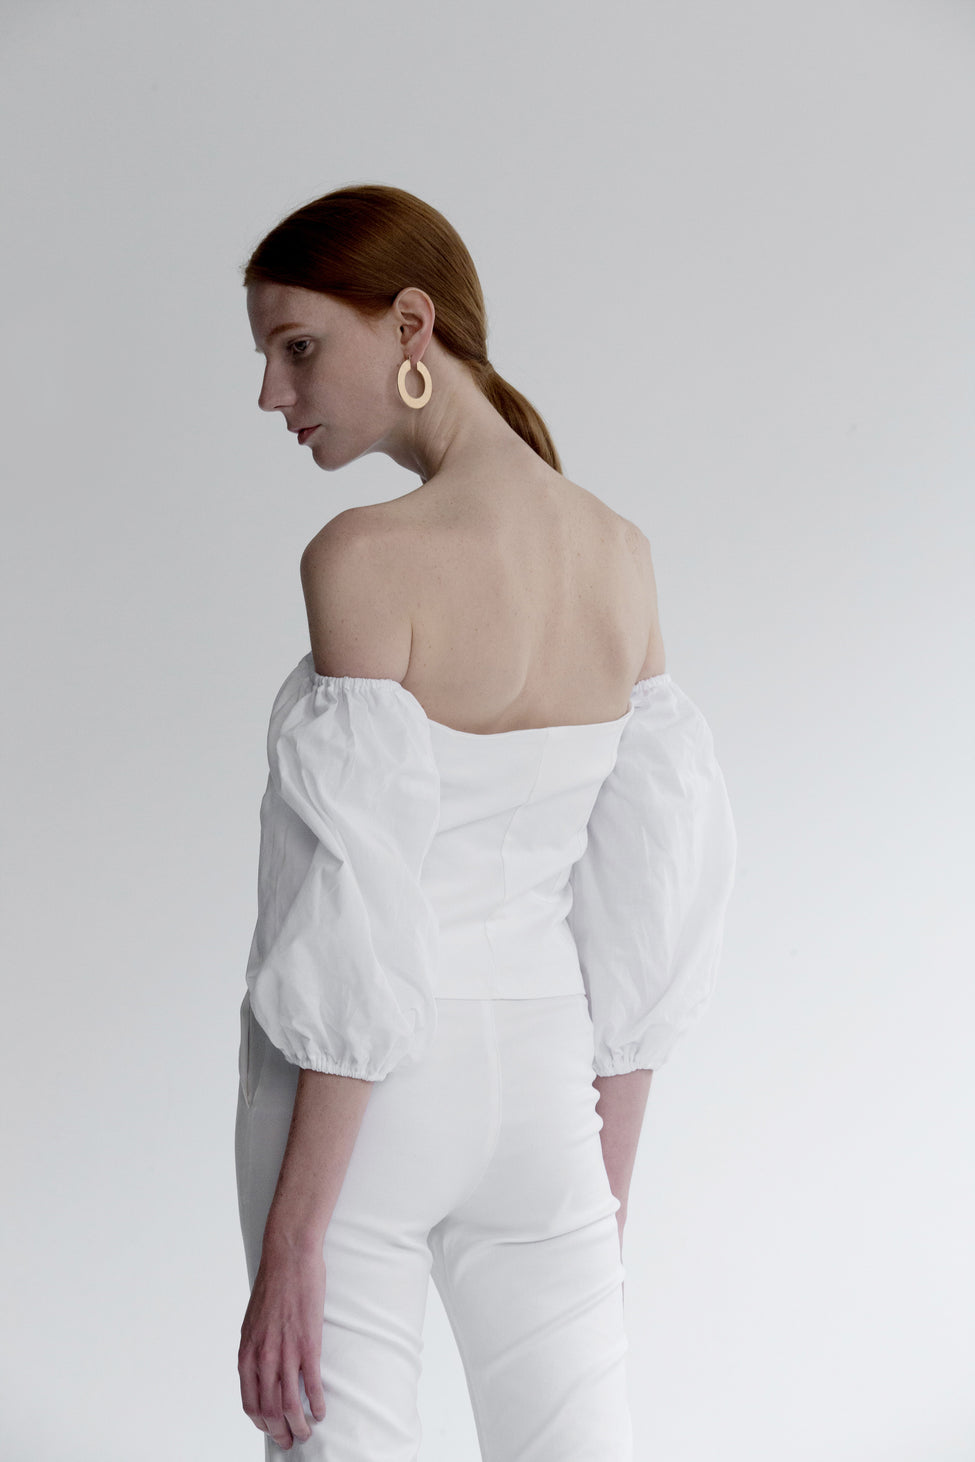 The Nahera Top in white featuring off-the-shoulder with long sleeves, self-tied closure and concealed zip opening along side. Cropped length.